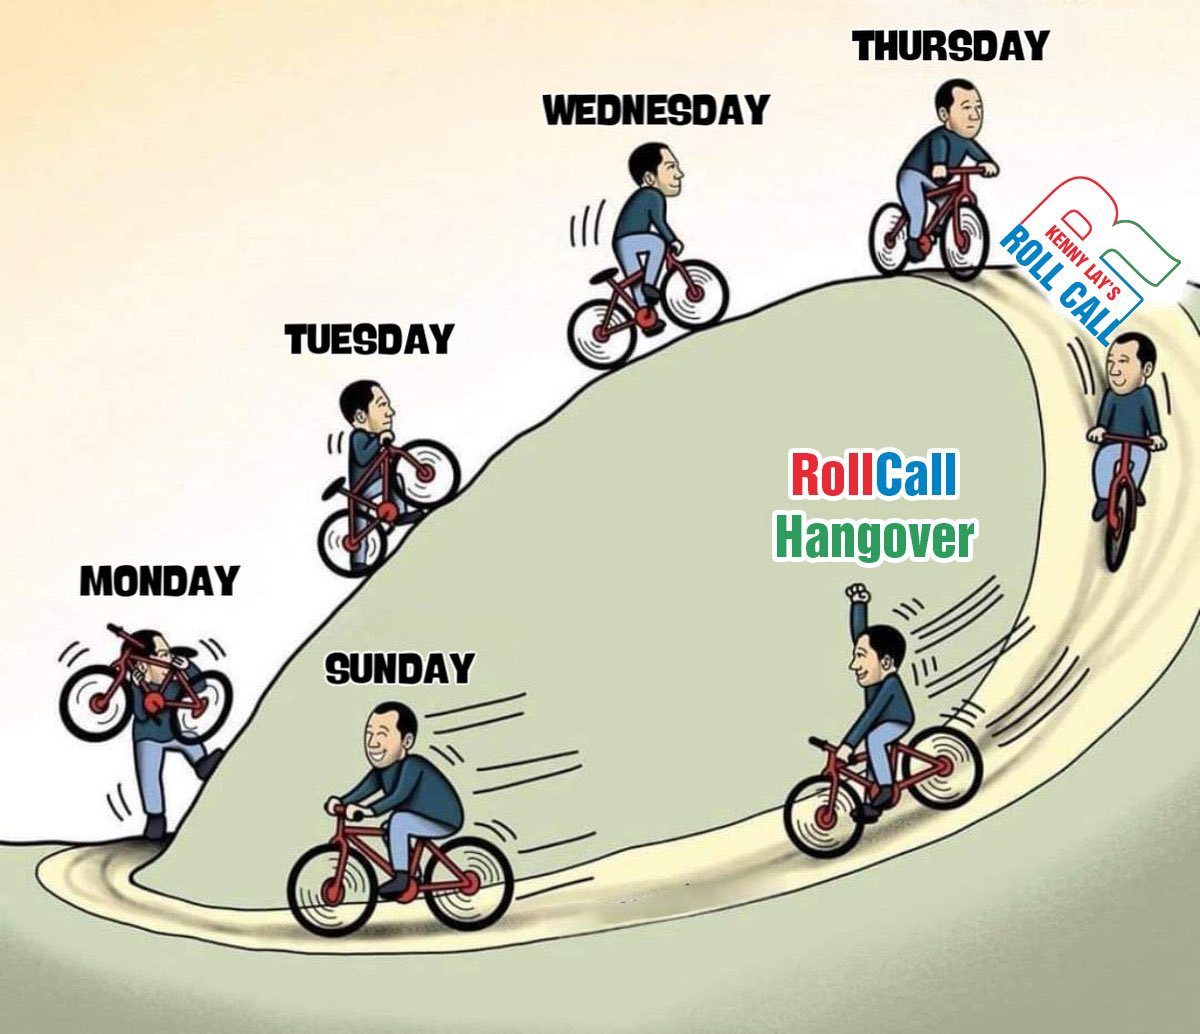 We're almost there Fam! #RollCall